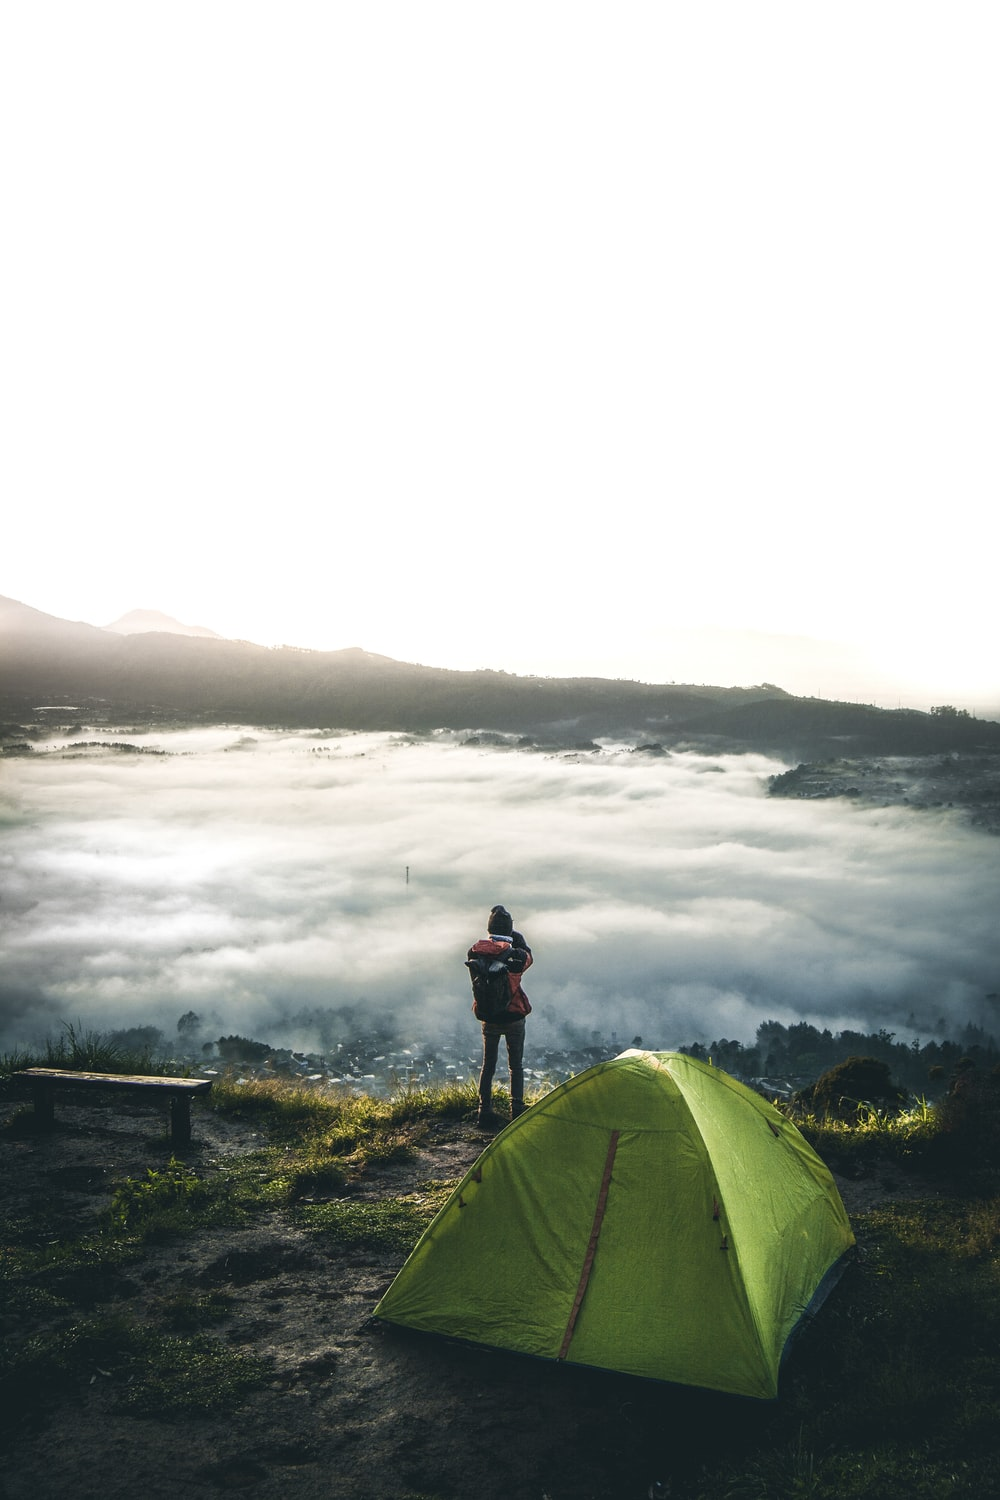 500 Camping Images Hd Download Free Images On Unsplash